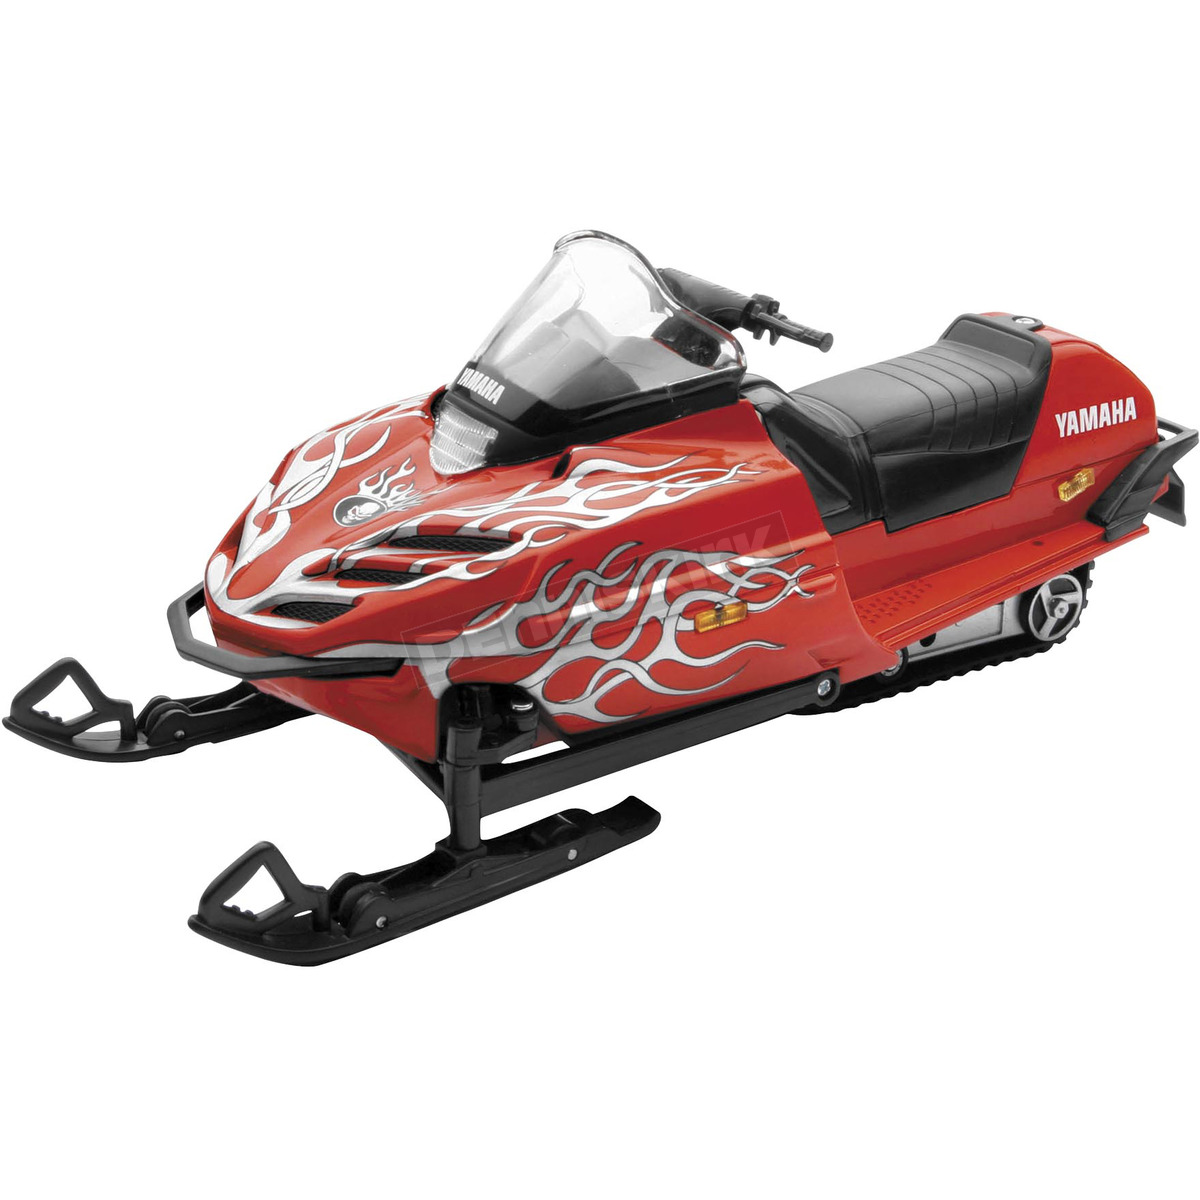 New ray toys remote controlled yamaha srx700 1 12 scale for New yamaha snowmobile